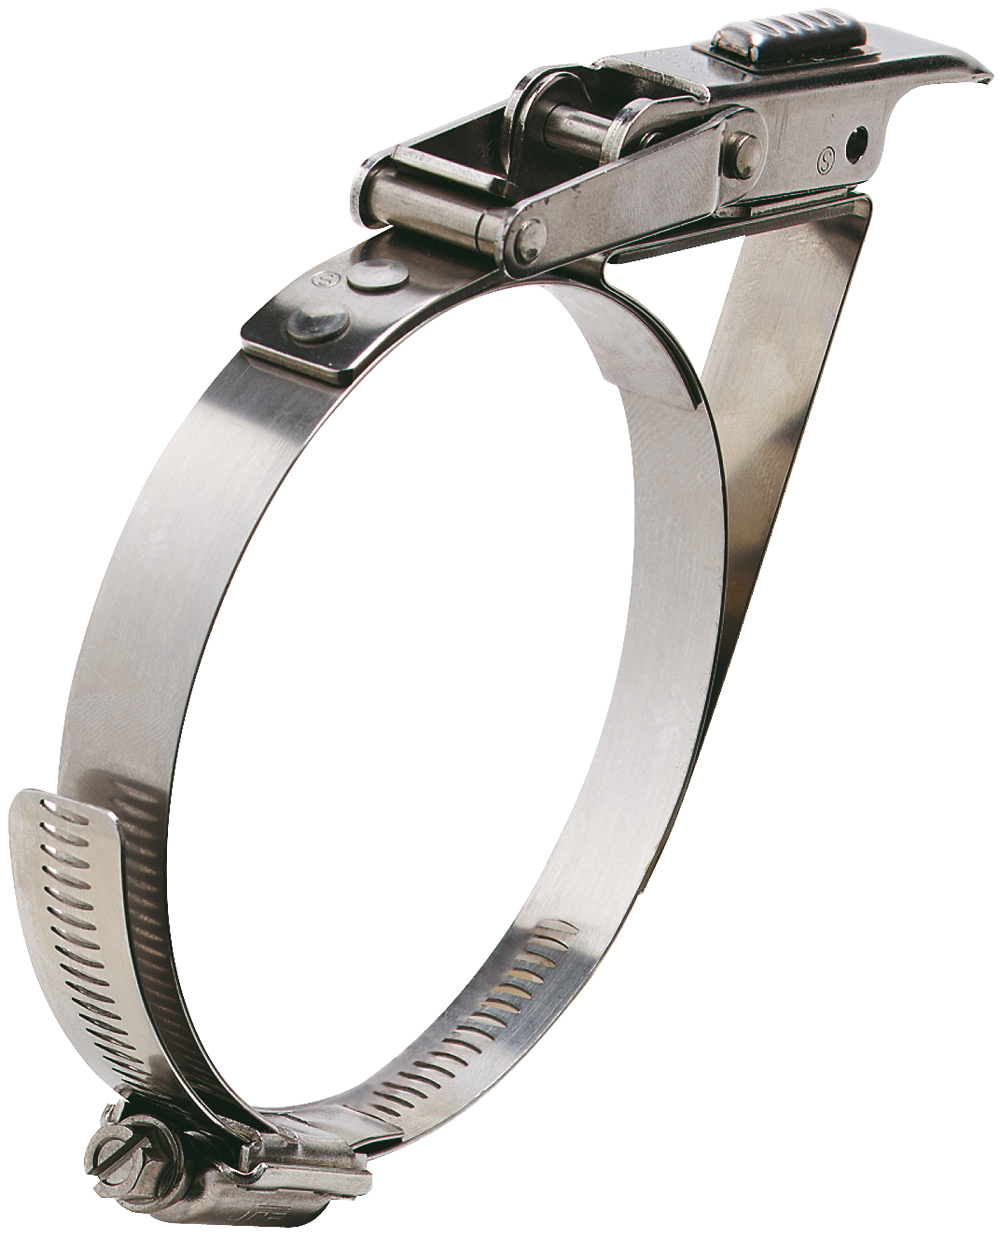 45-55mm Diameter Hi-Torque Heavy Duty Stainless Steel Quick Release Bandclamp with Safety Catch